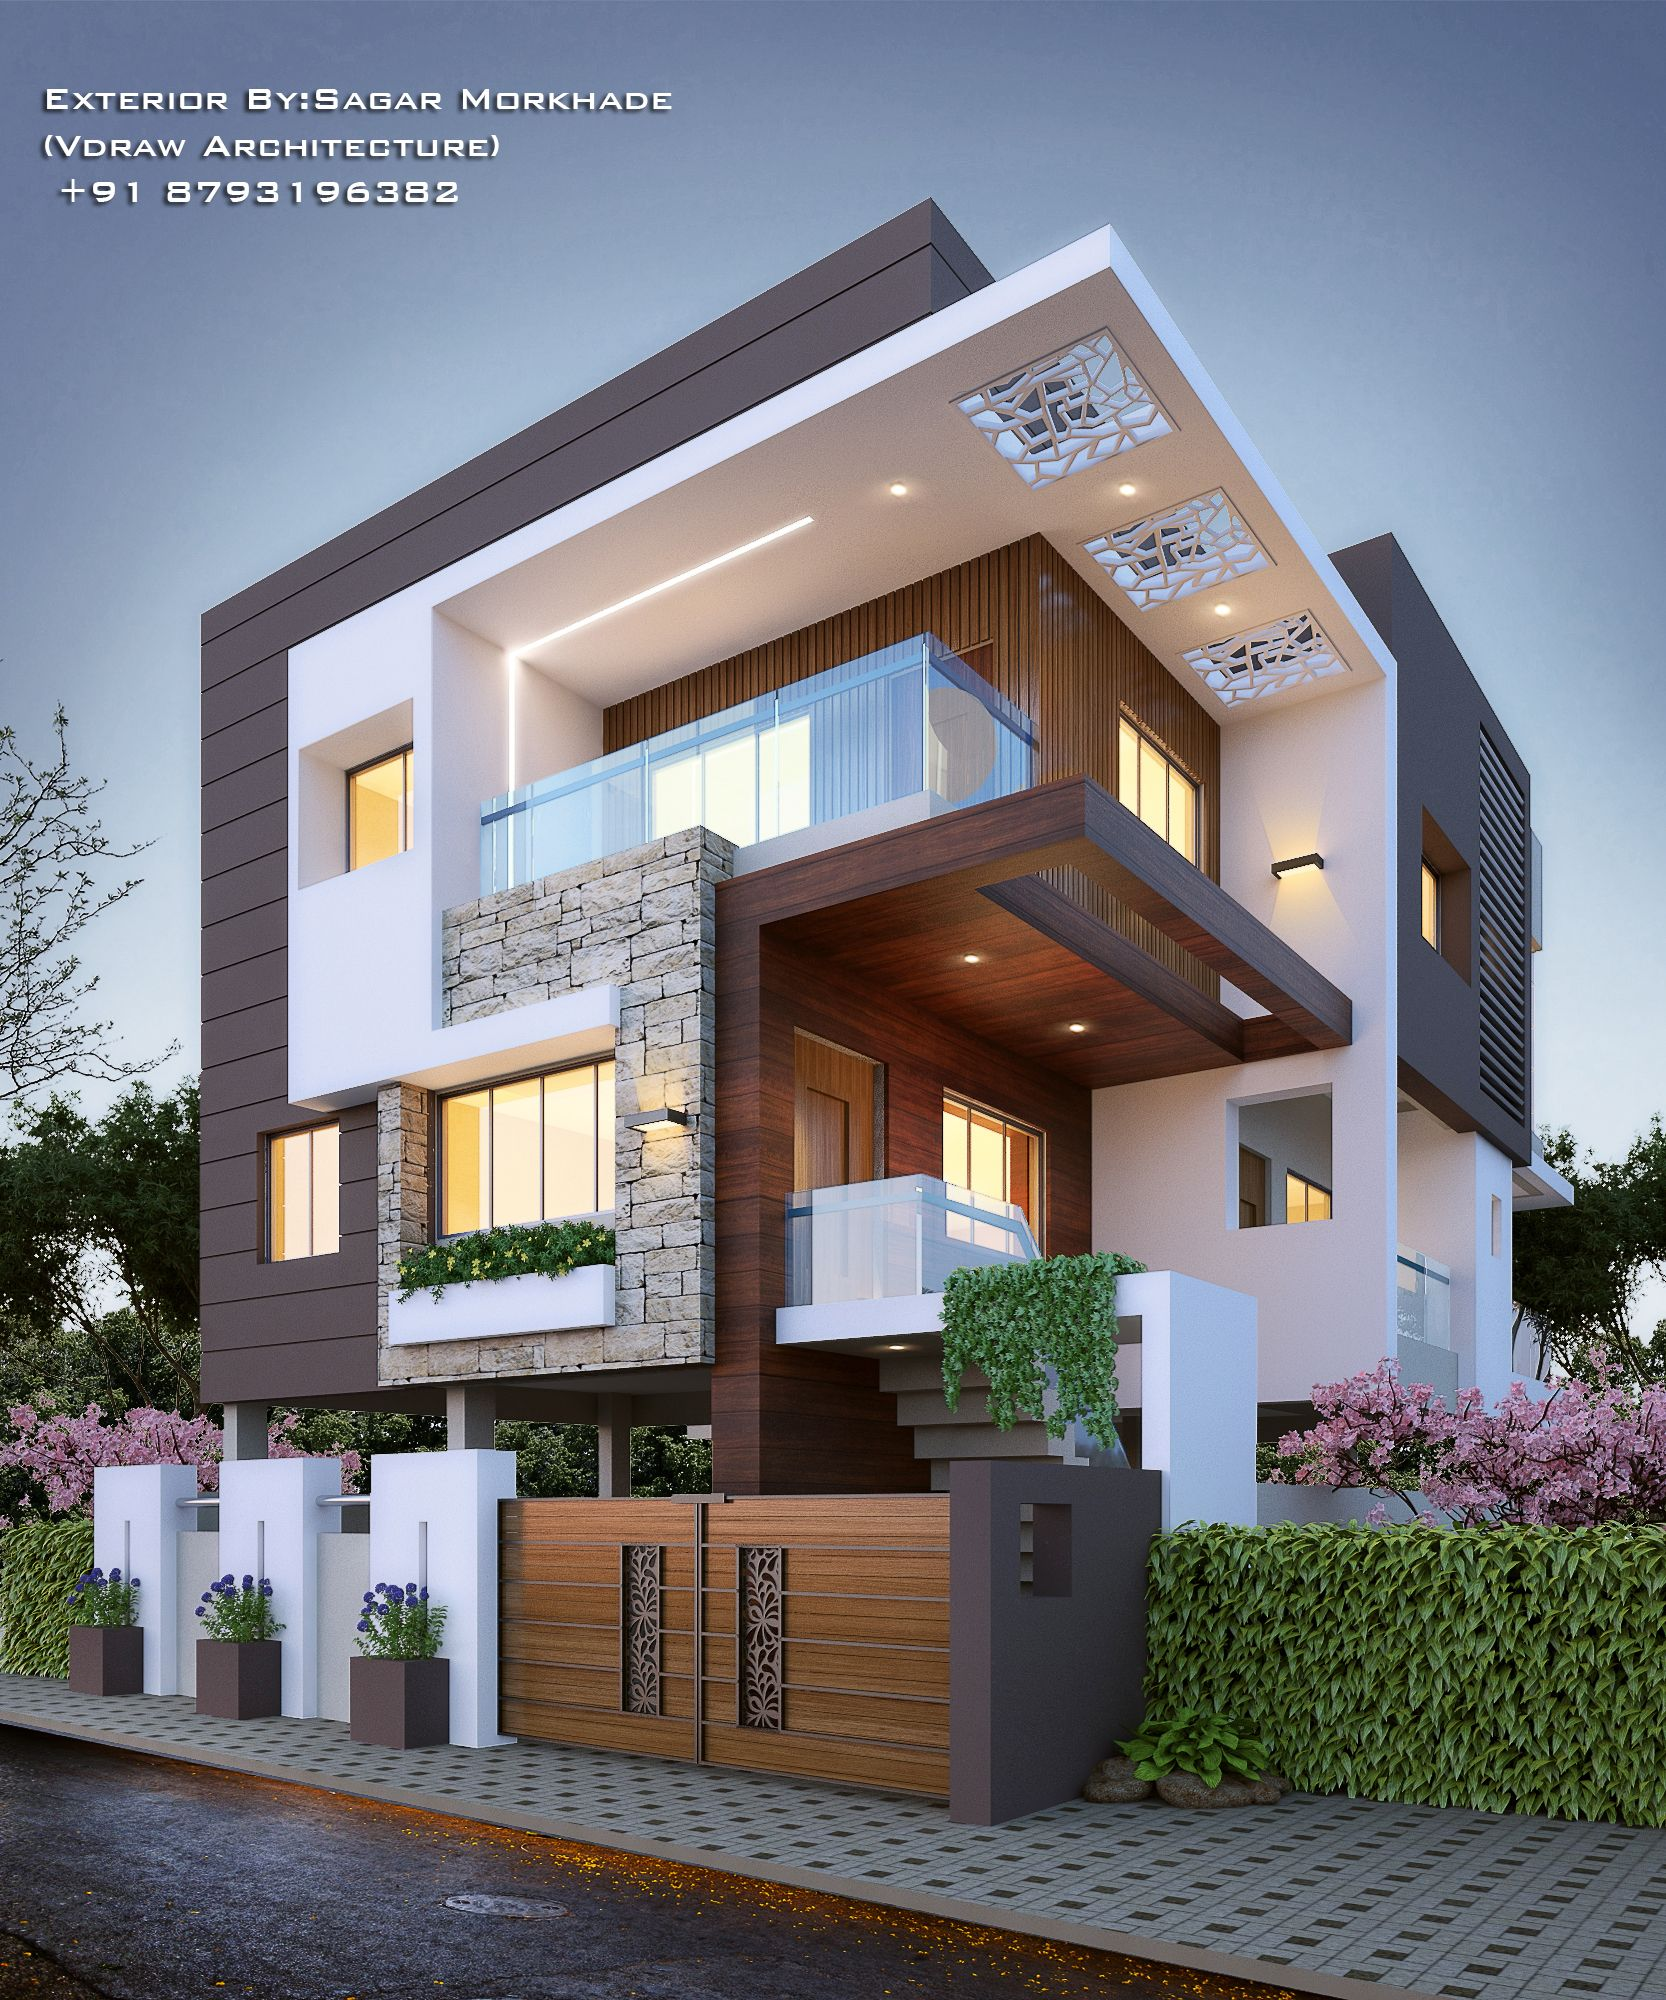 Contemporary Home Exterior Design Ideas: #Modern #Residential #Exterior By, Ar. Sagar Morkhade